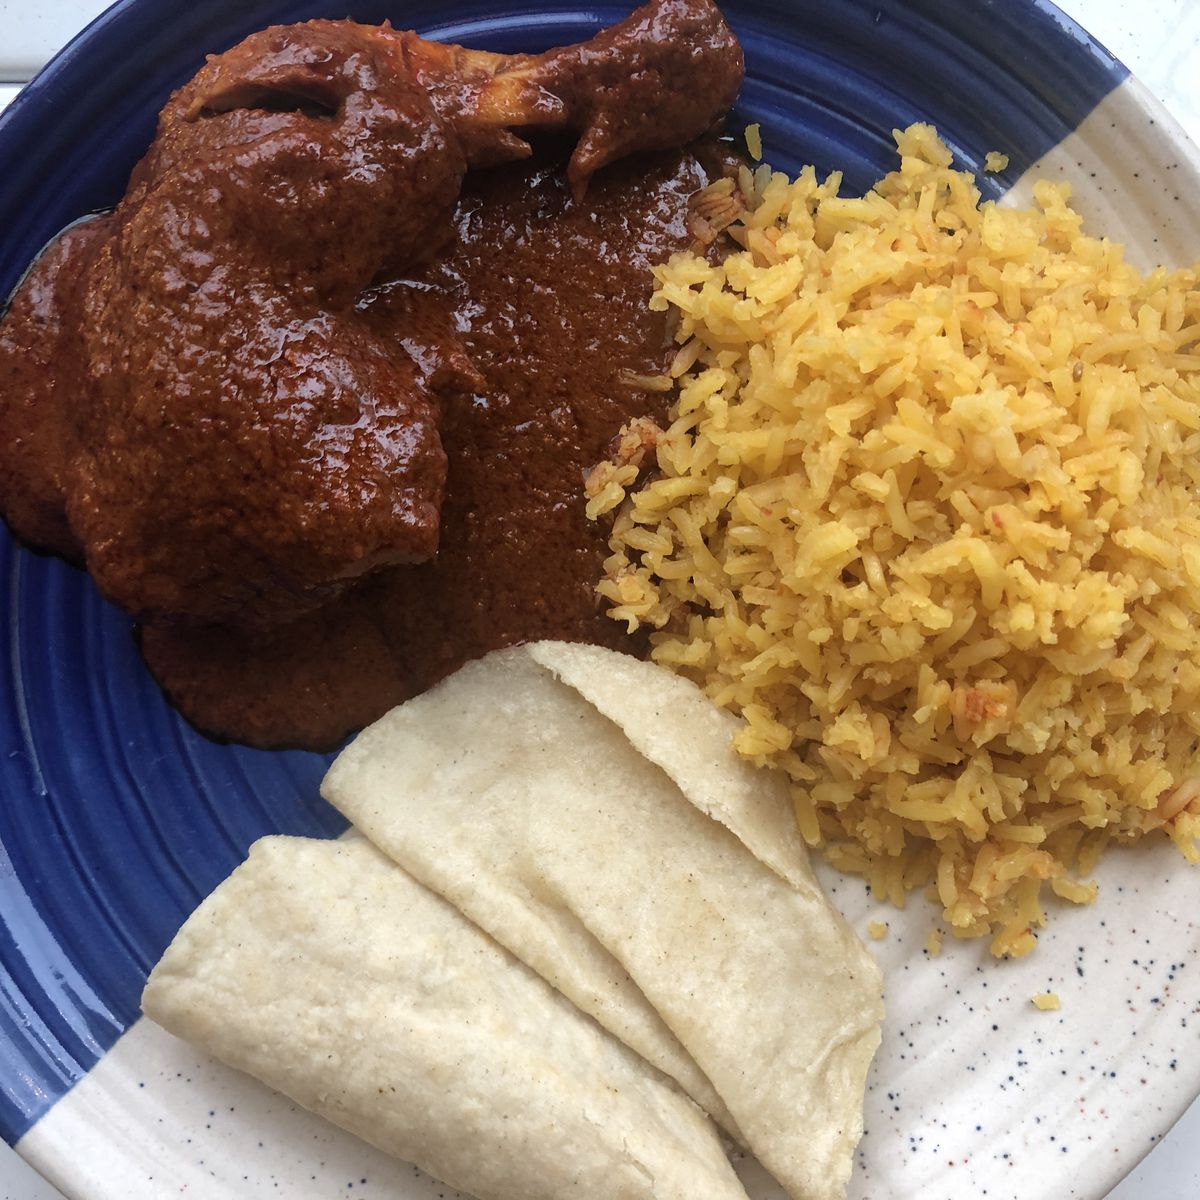 A plate of mole along with some white flour tortillas and yellow rice